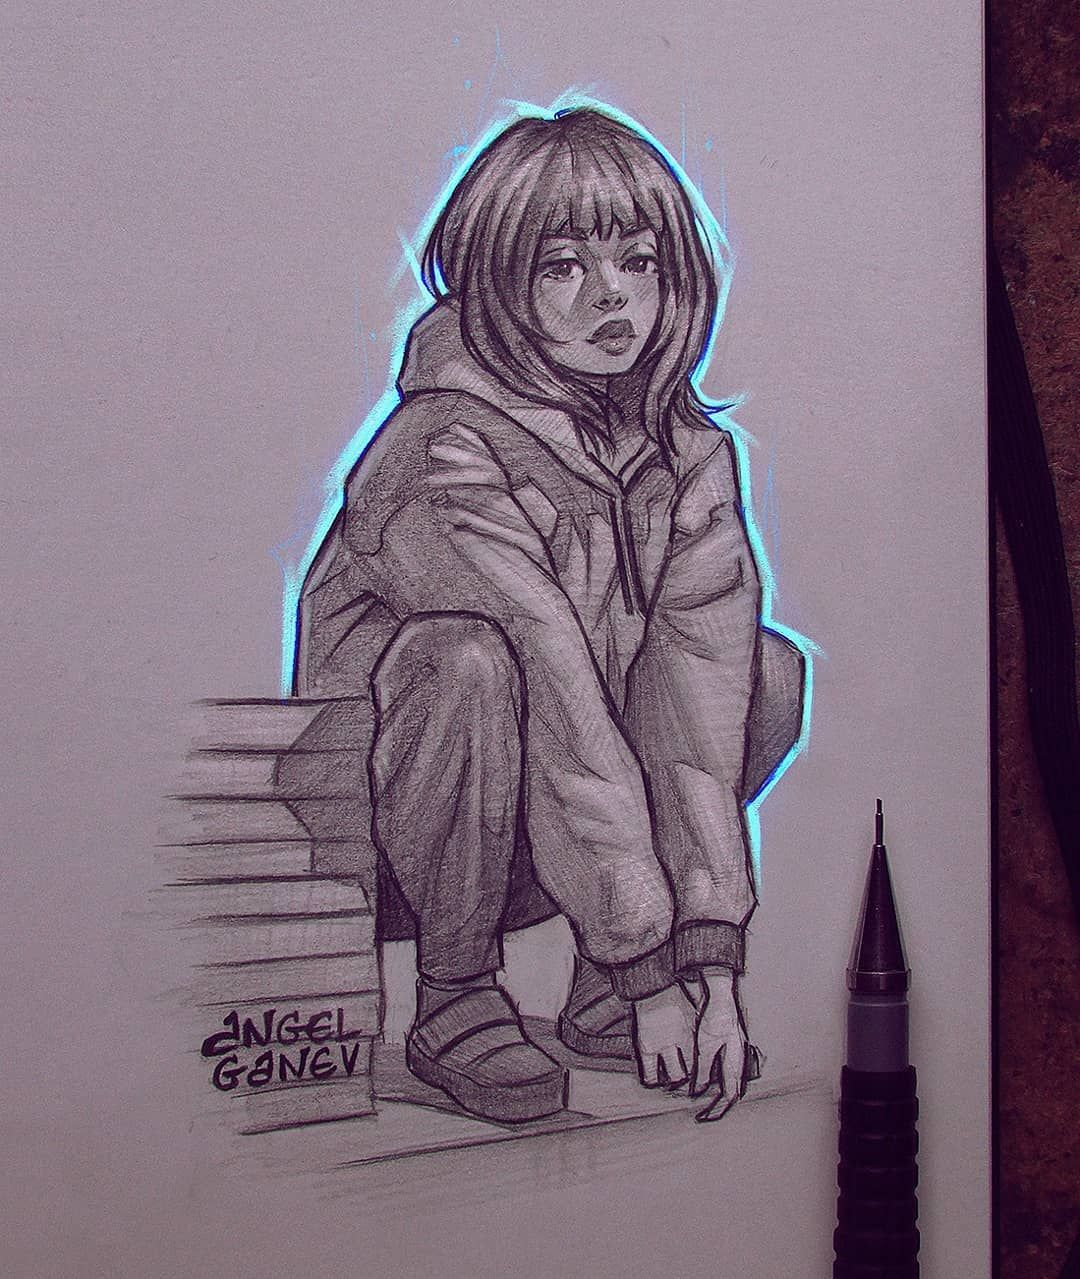 "Angel Ganev on Instagram: ""Blue Aura~😍✨ Pencil sketch wirh some color ☺️ I like that it kinda came off having a Billie Eilish vibe 🙈😂 . Trying out a more chaotic…"""